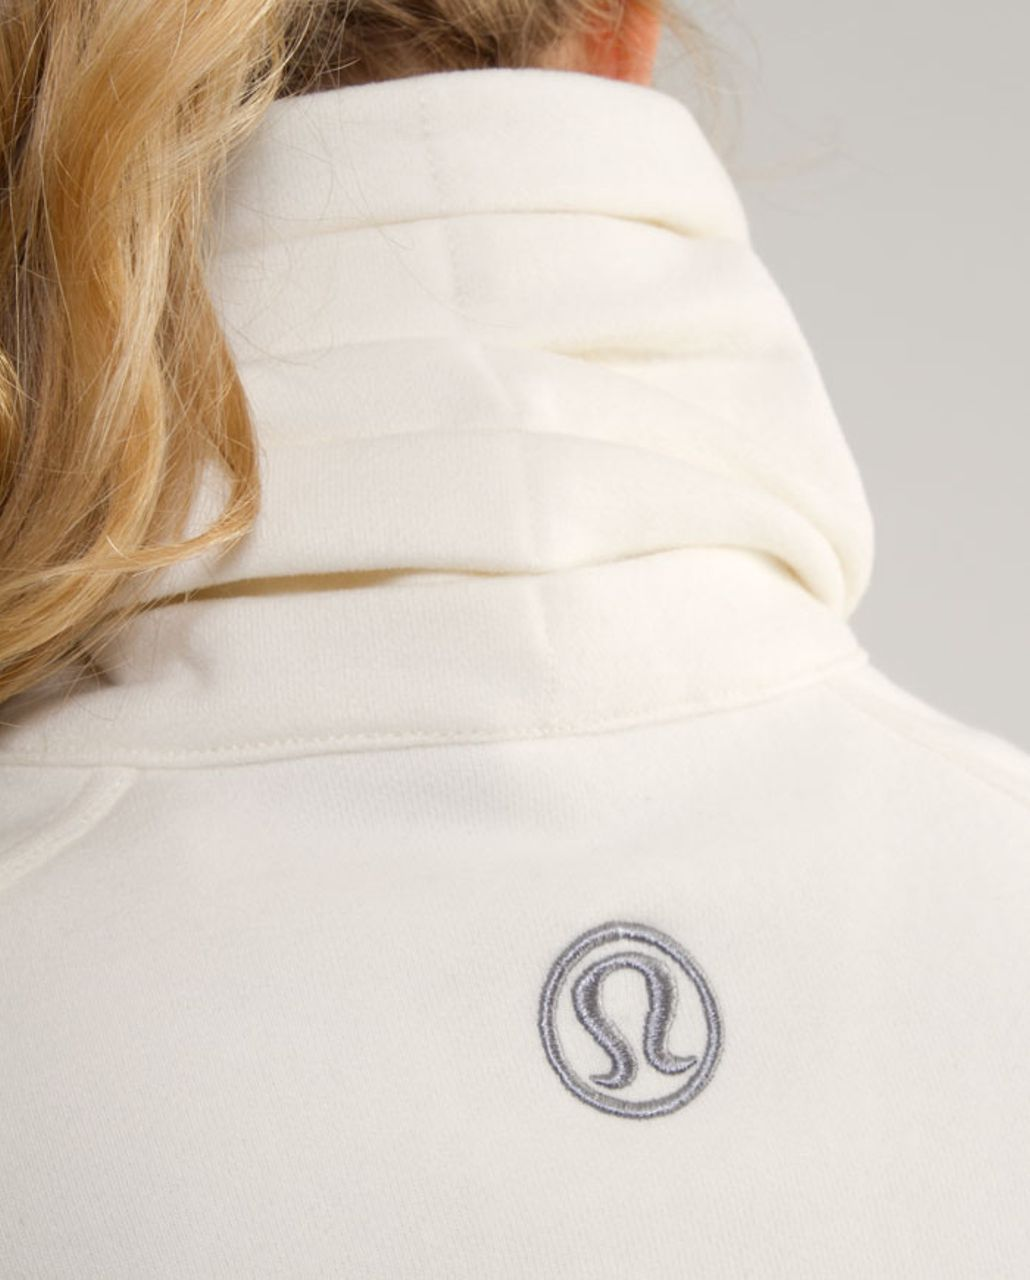 Lululemon Cuddle Up Jacket - Ghost